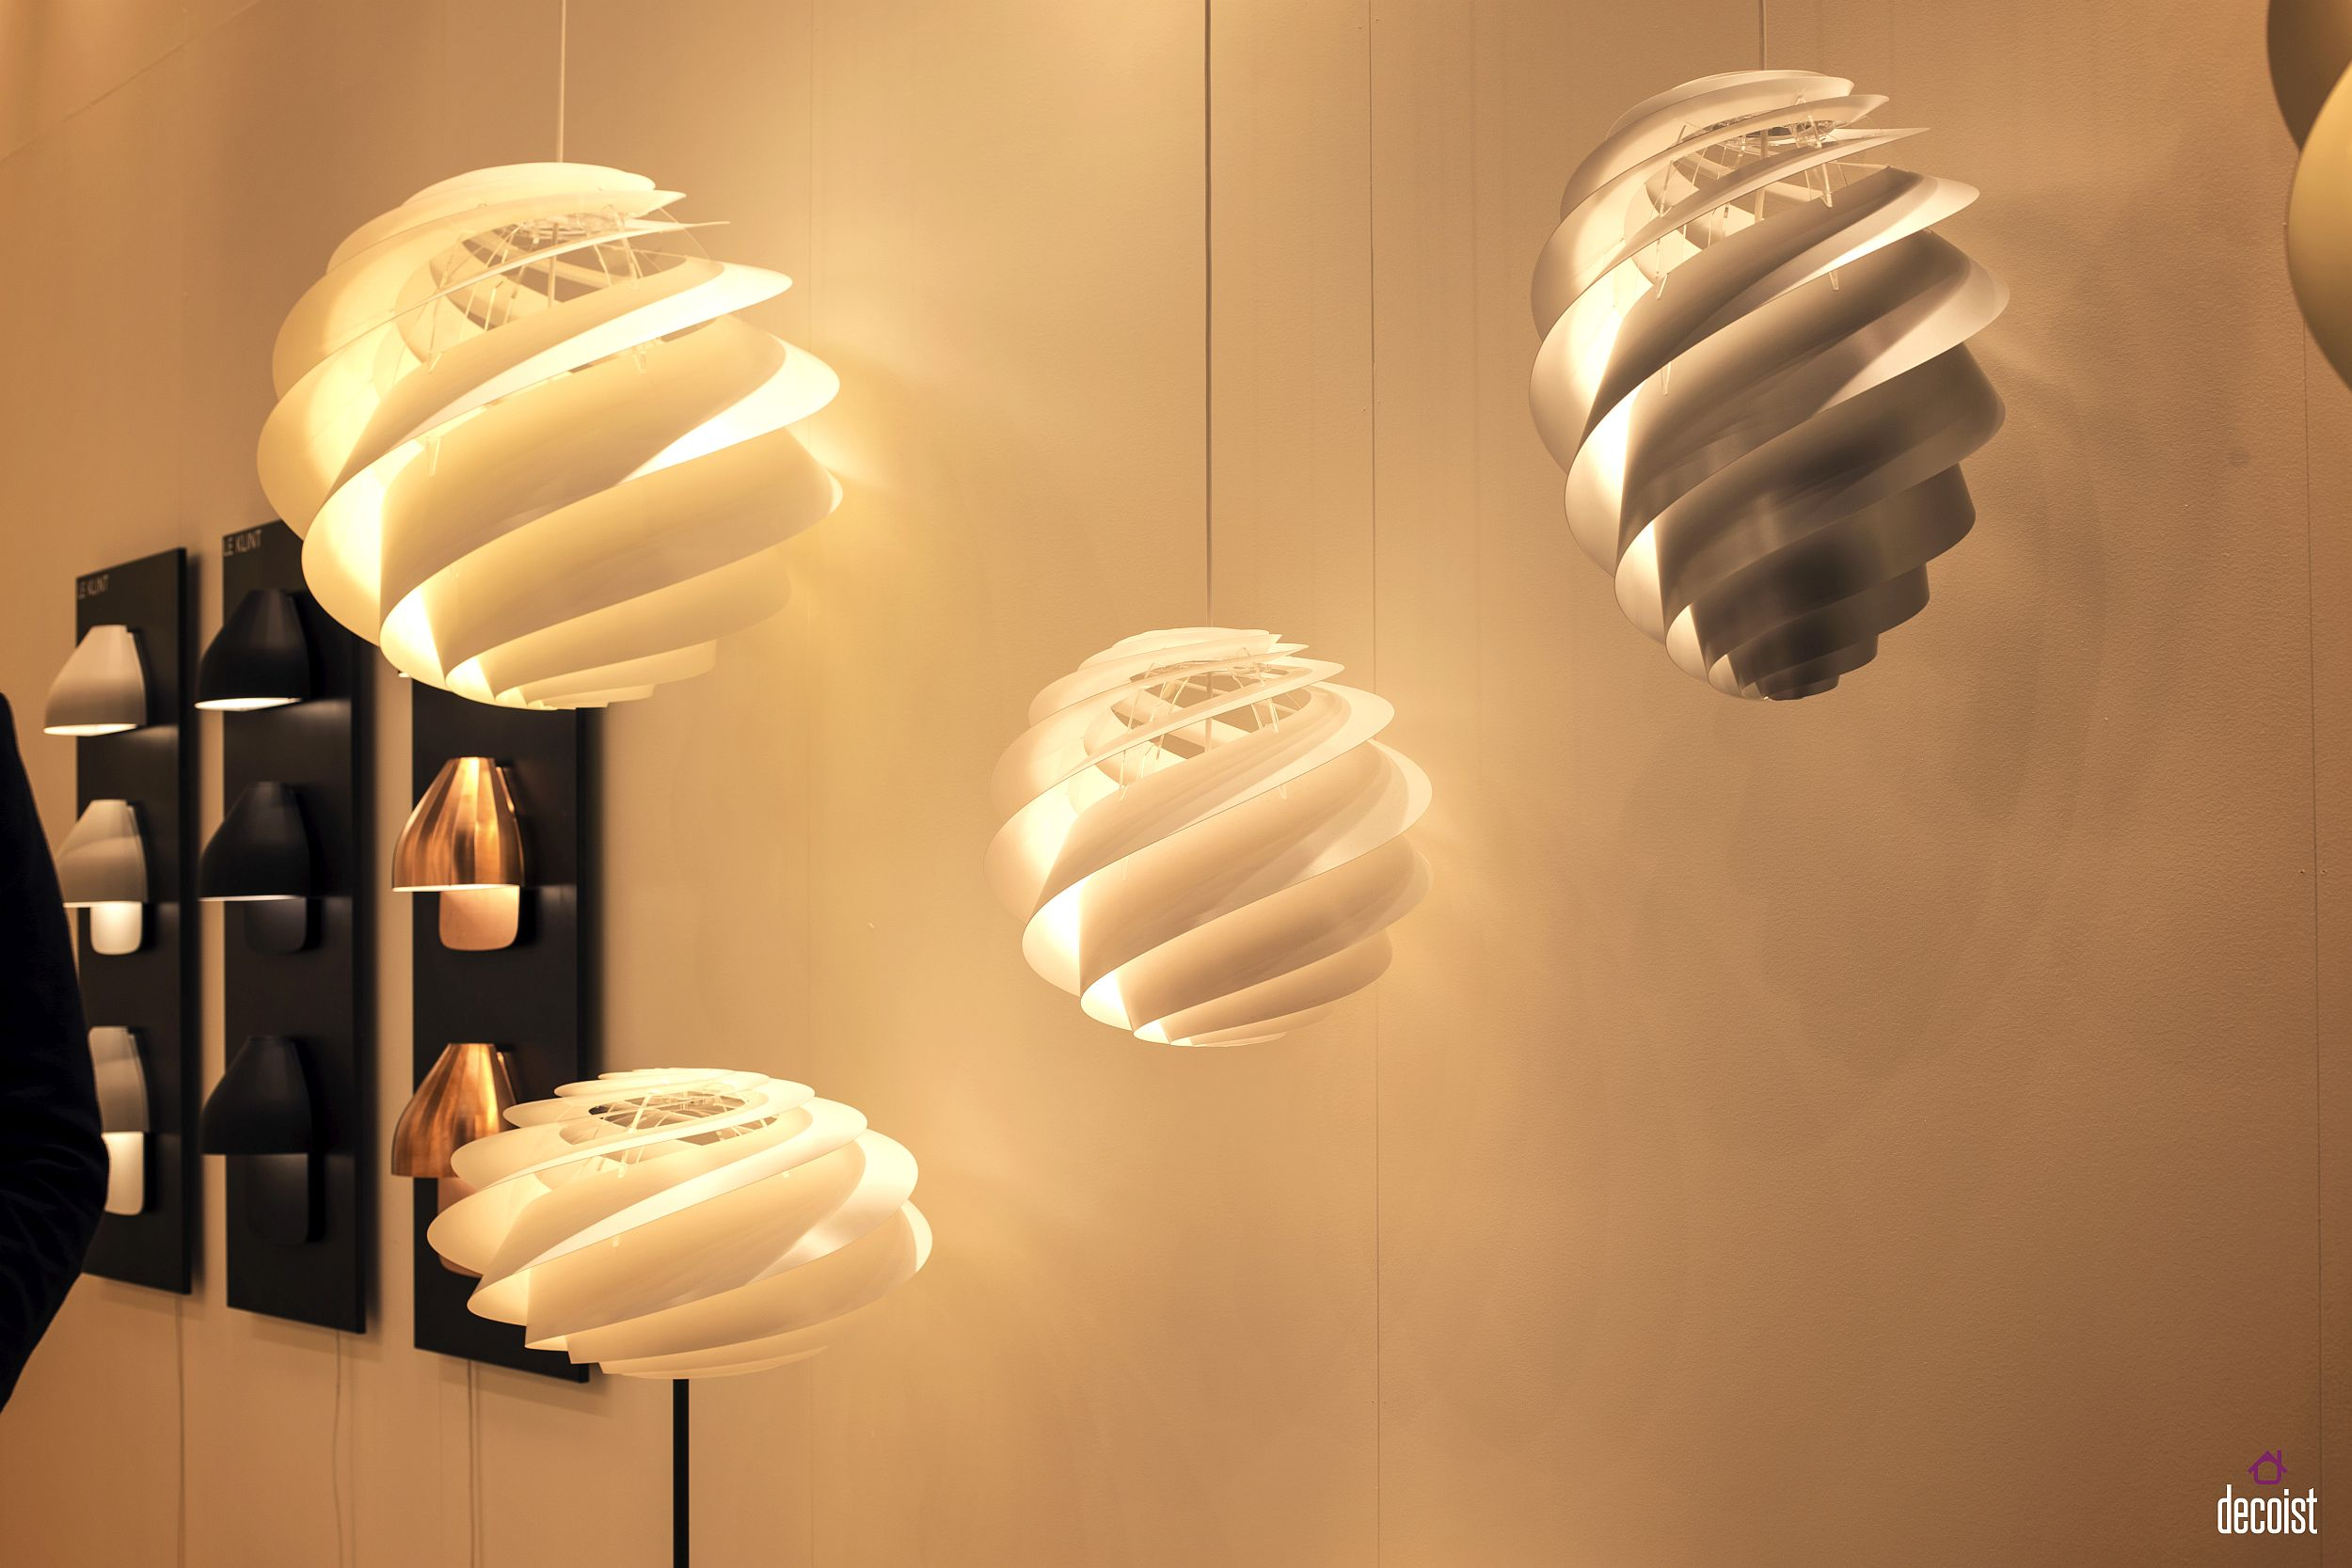 Swirl pendants from Le Klint are a modern icon in the making